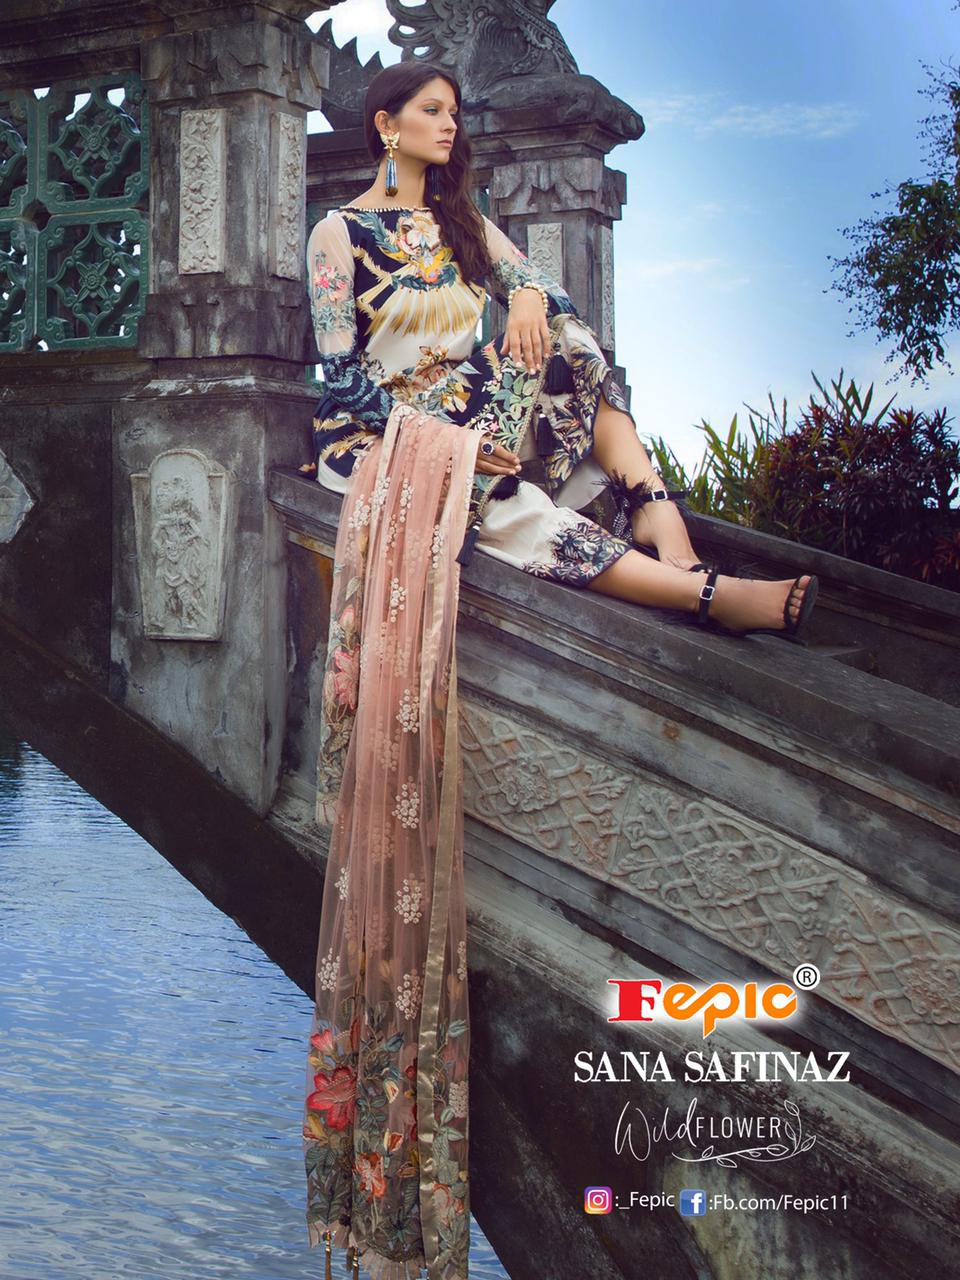 Fepic Rosemeen Sana Safinaz Wild Flower Designer Pure Cambric Cotton Digital Printe With Embroidery Patch Work Suits Wholesale